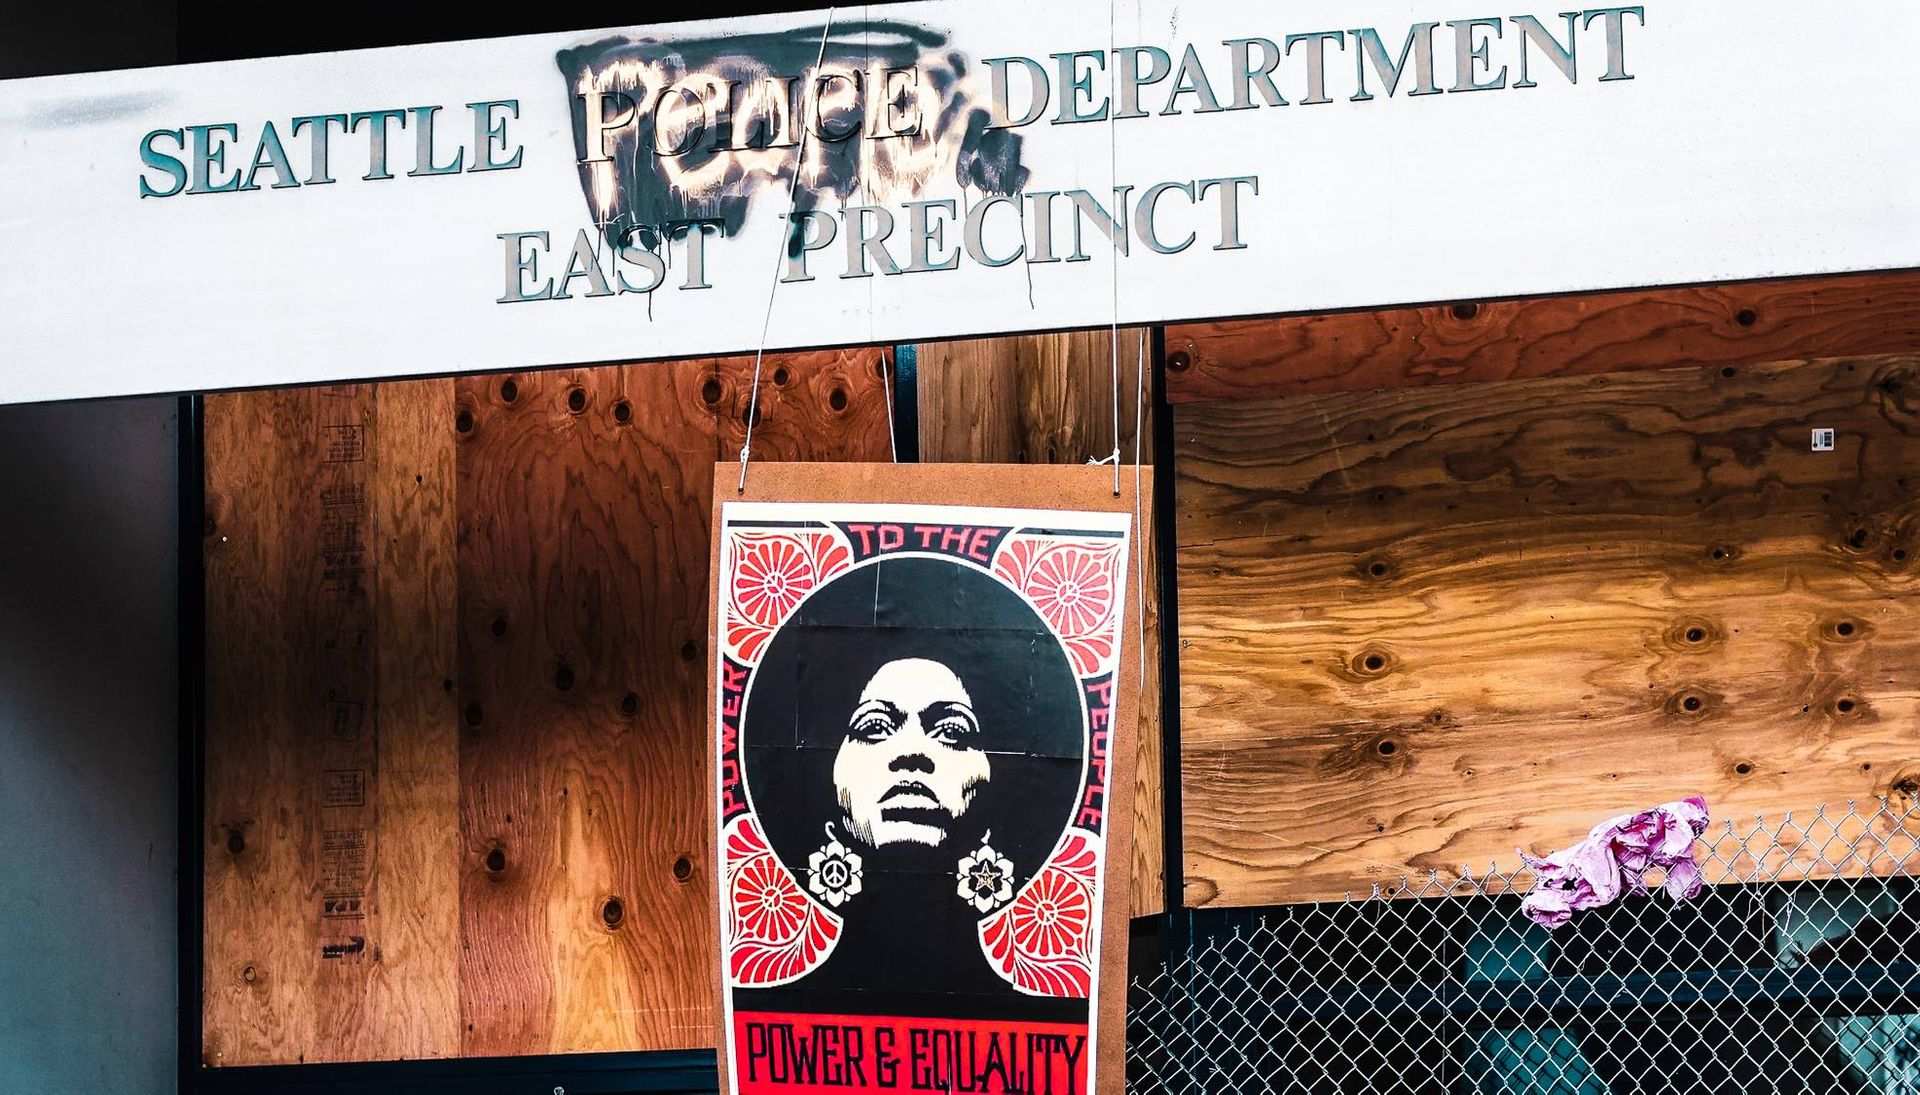 Seattle East Precinct Police Department sign defaced with Seattle People's Department and protest sign. Rewire PBS Our Future CHOP